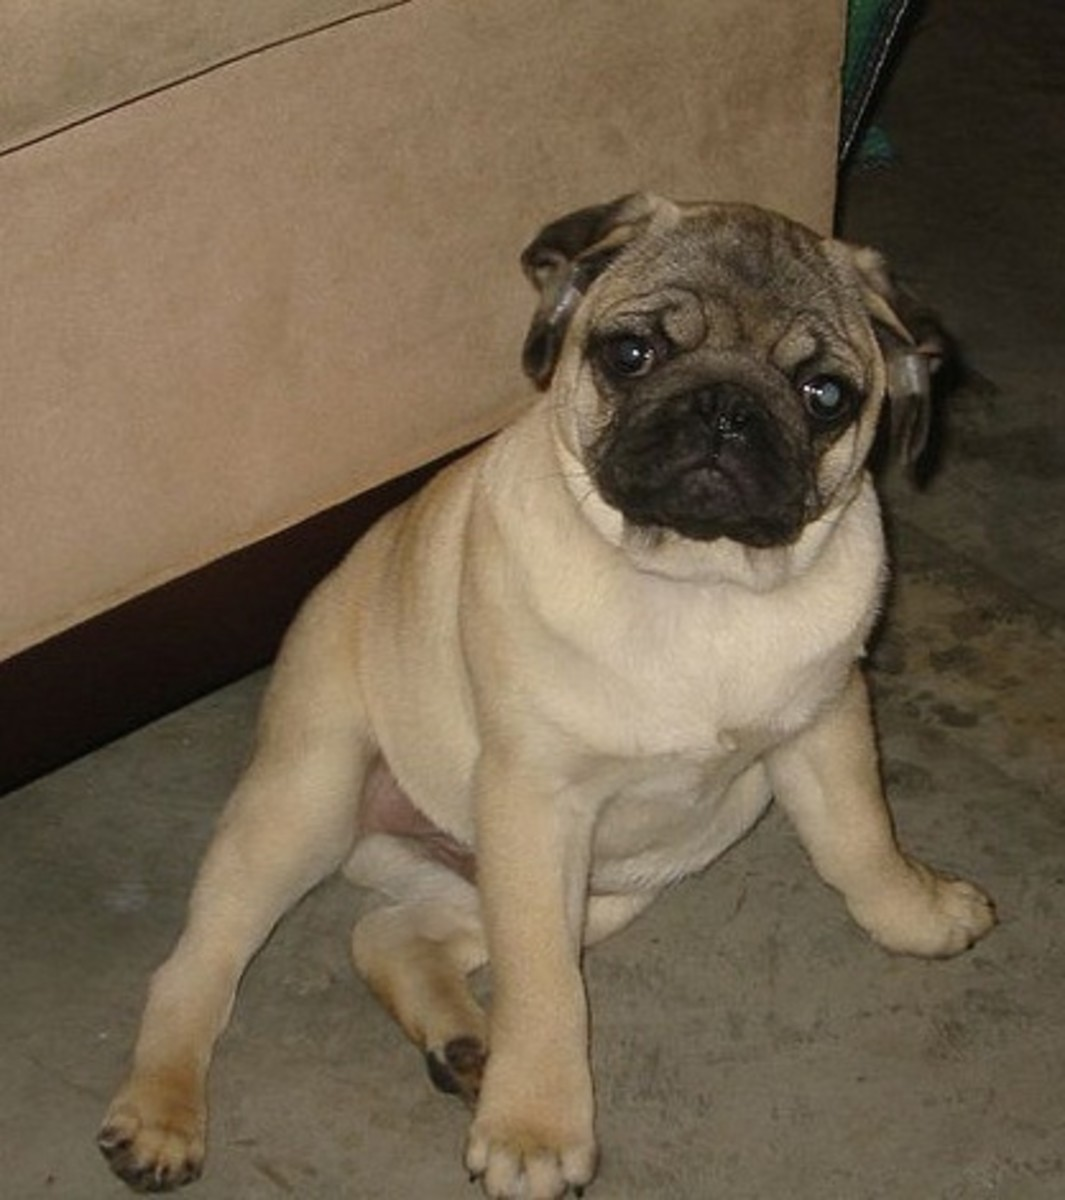 Younger and thinner Pugs may be quicker to react.